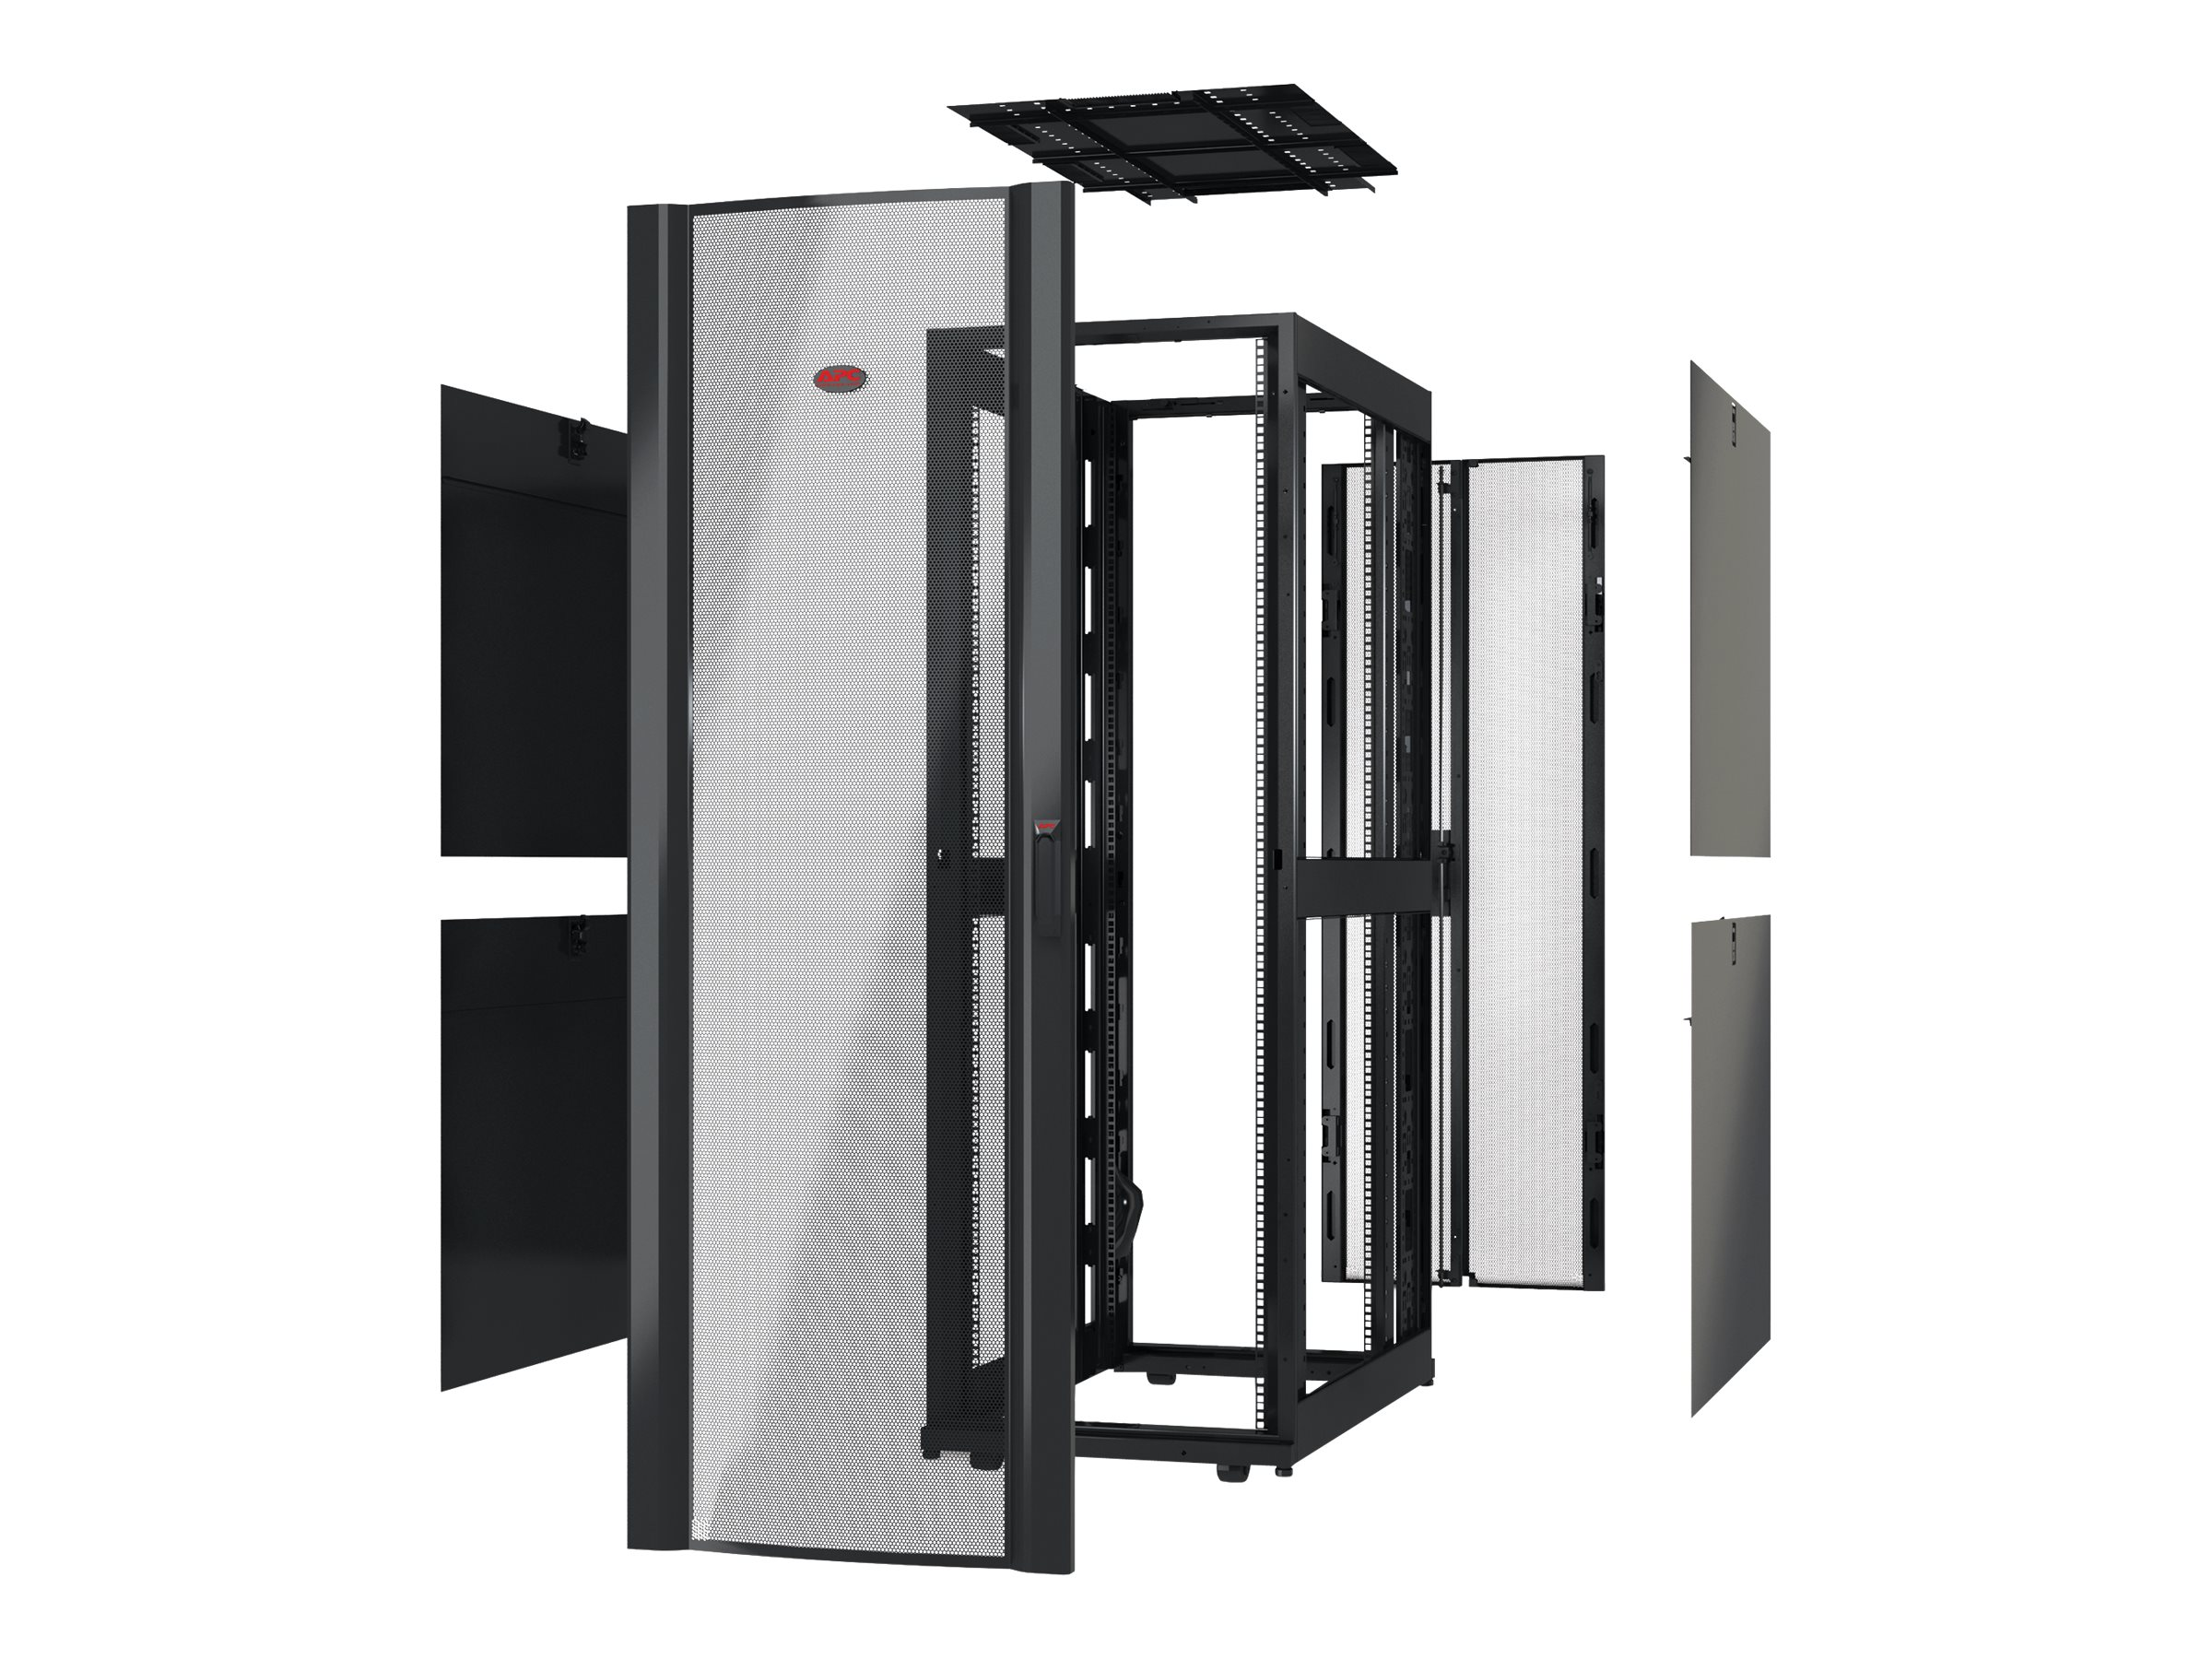 APC Netshelter SX 42U 600mm Wide x 1070mm Deep Enclosure w o Sides, w o Doors, Black, AR3100X617